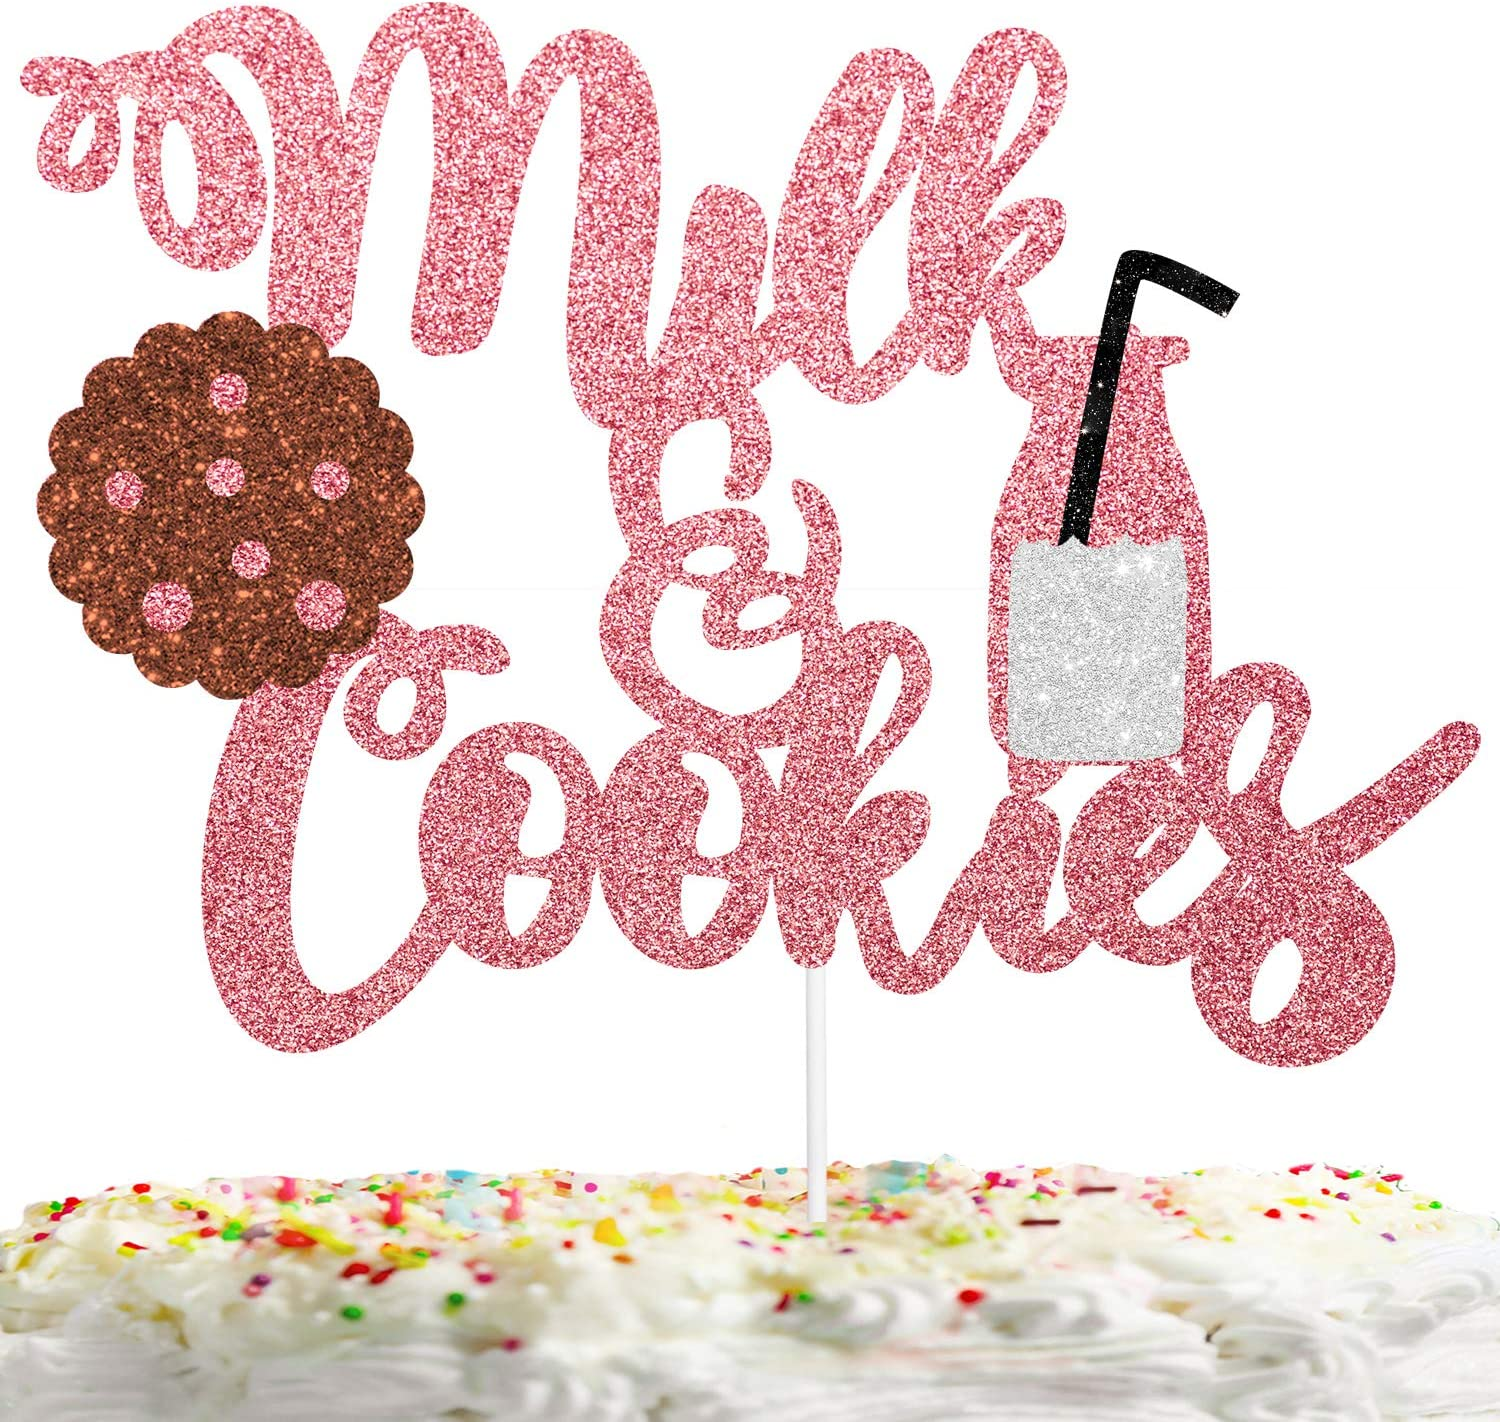 Milk and Cookies Cake Topper Sweet Birthday Decor Gender Reveal Theme Picks for Baby Shower Party Decorations Supplies